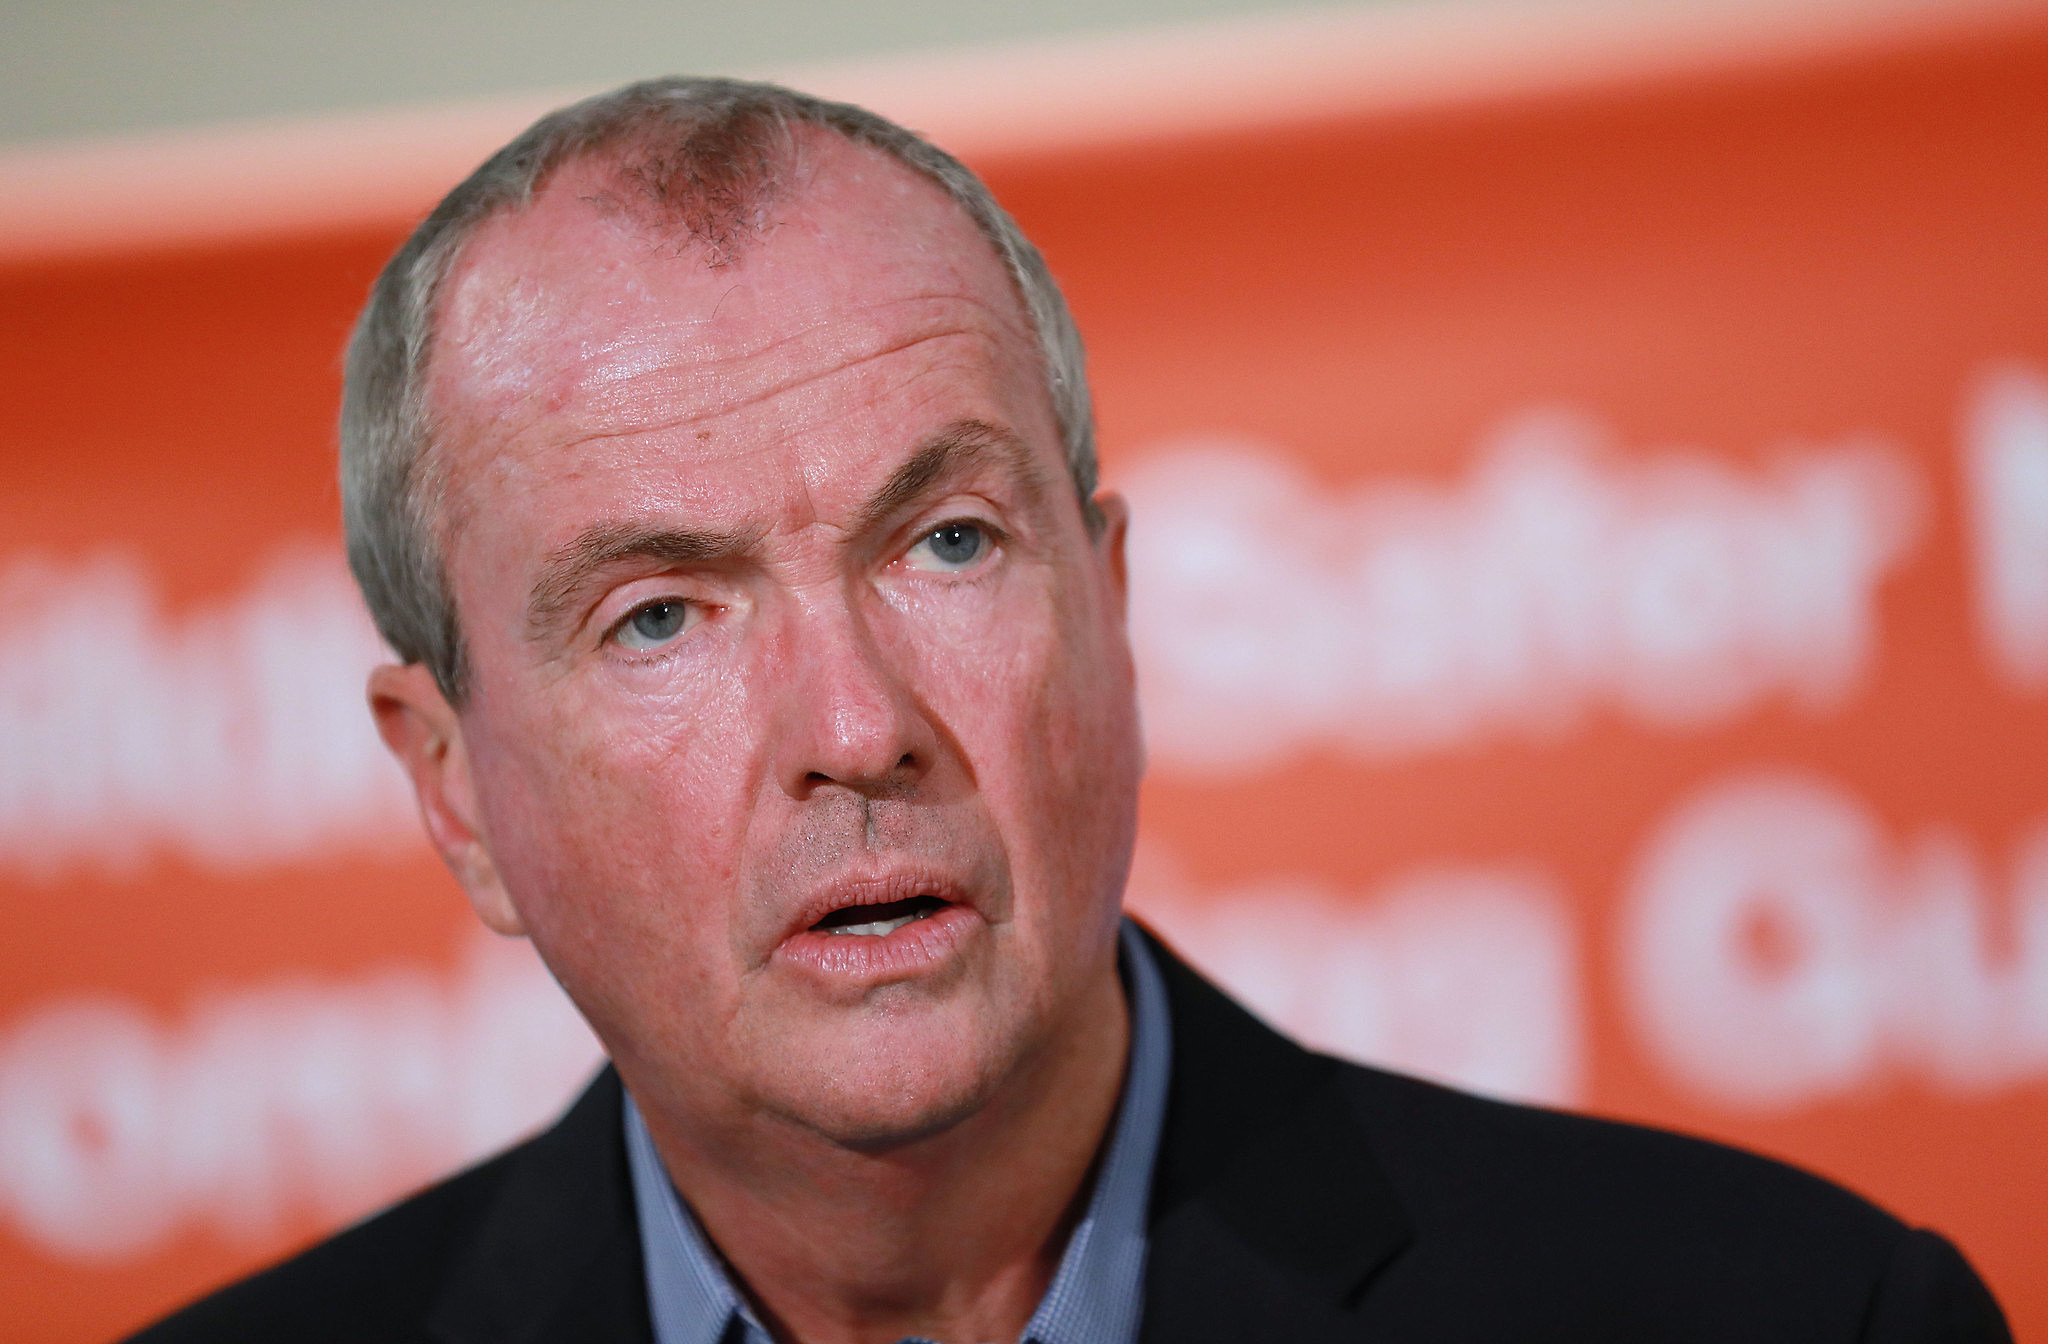 Taxpayers billed $18K for Murphy staffs' trip to India, despite assurances